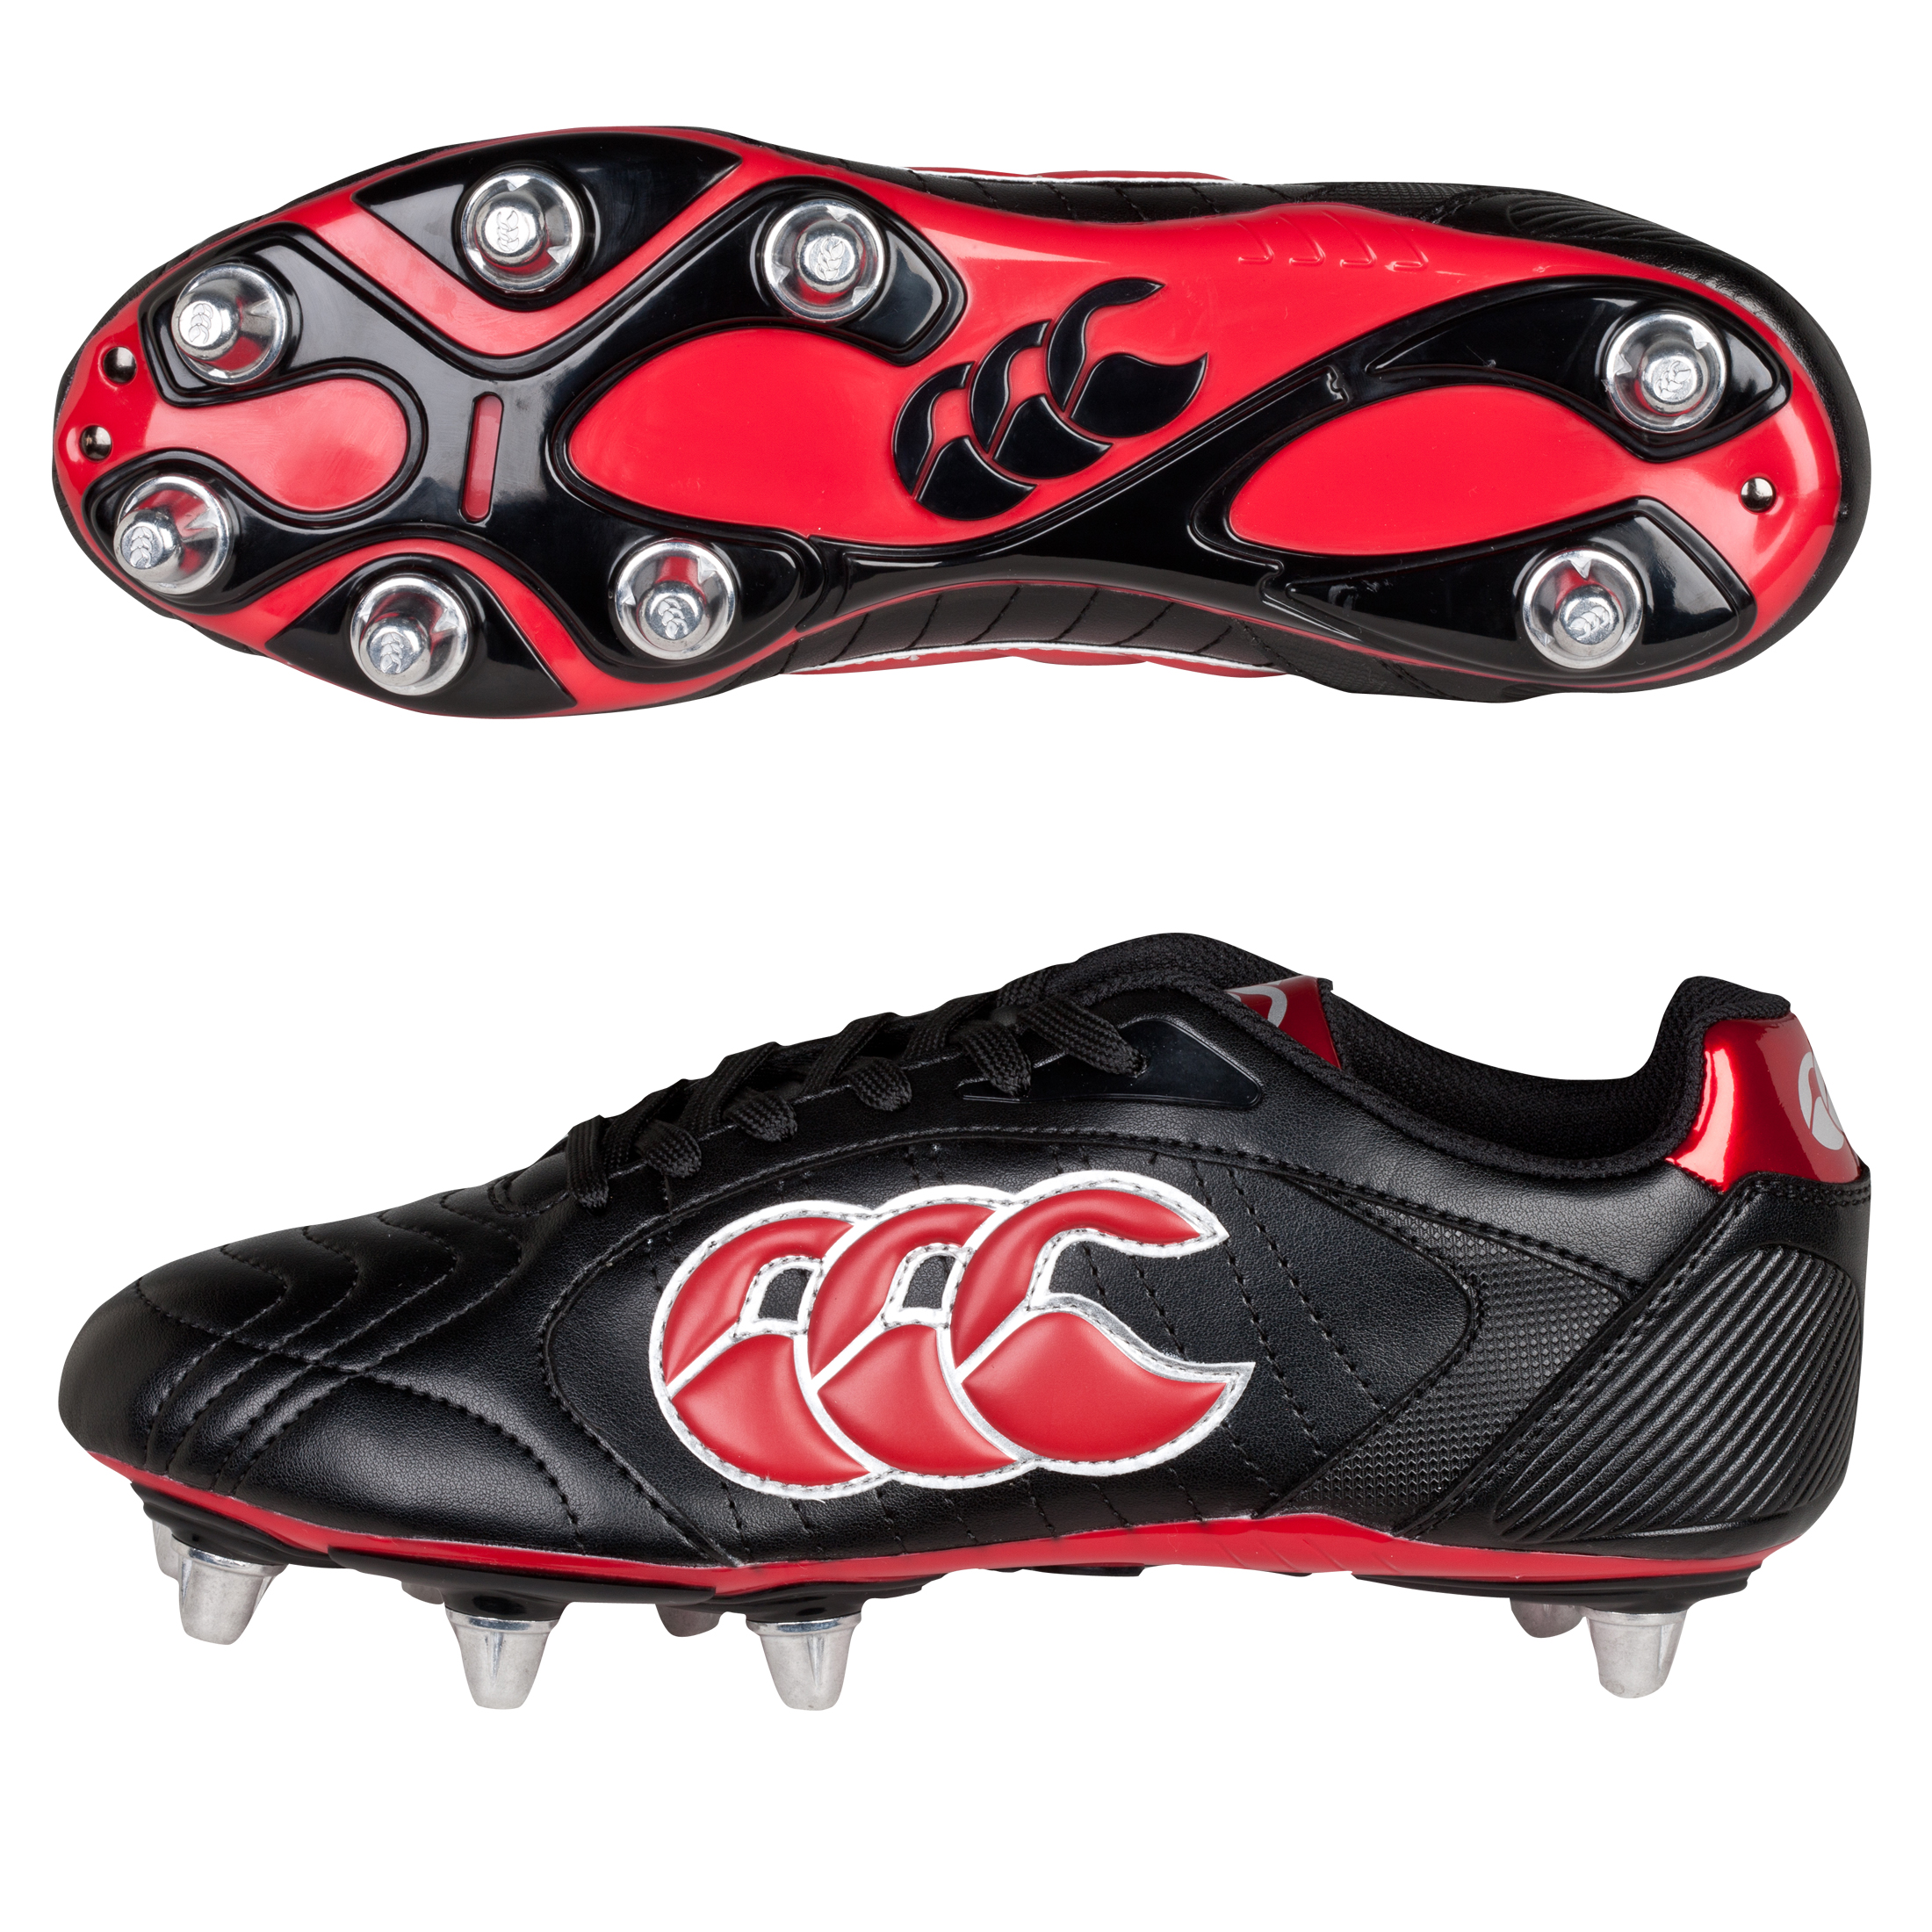 Canterbury Phoenix Lli Club 8 Stud Rugby Boot - Black/Red/Silver